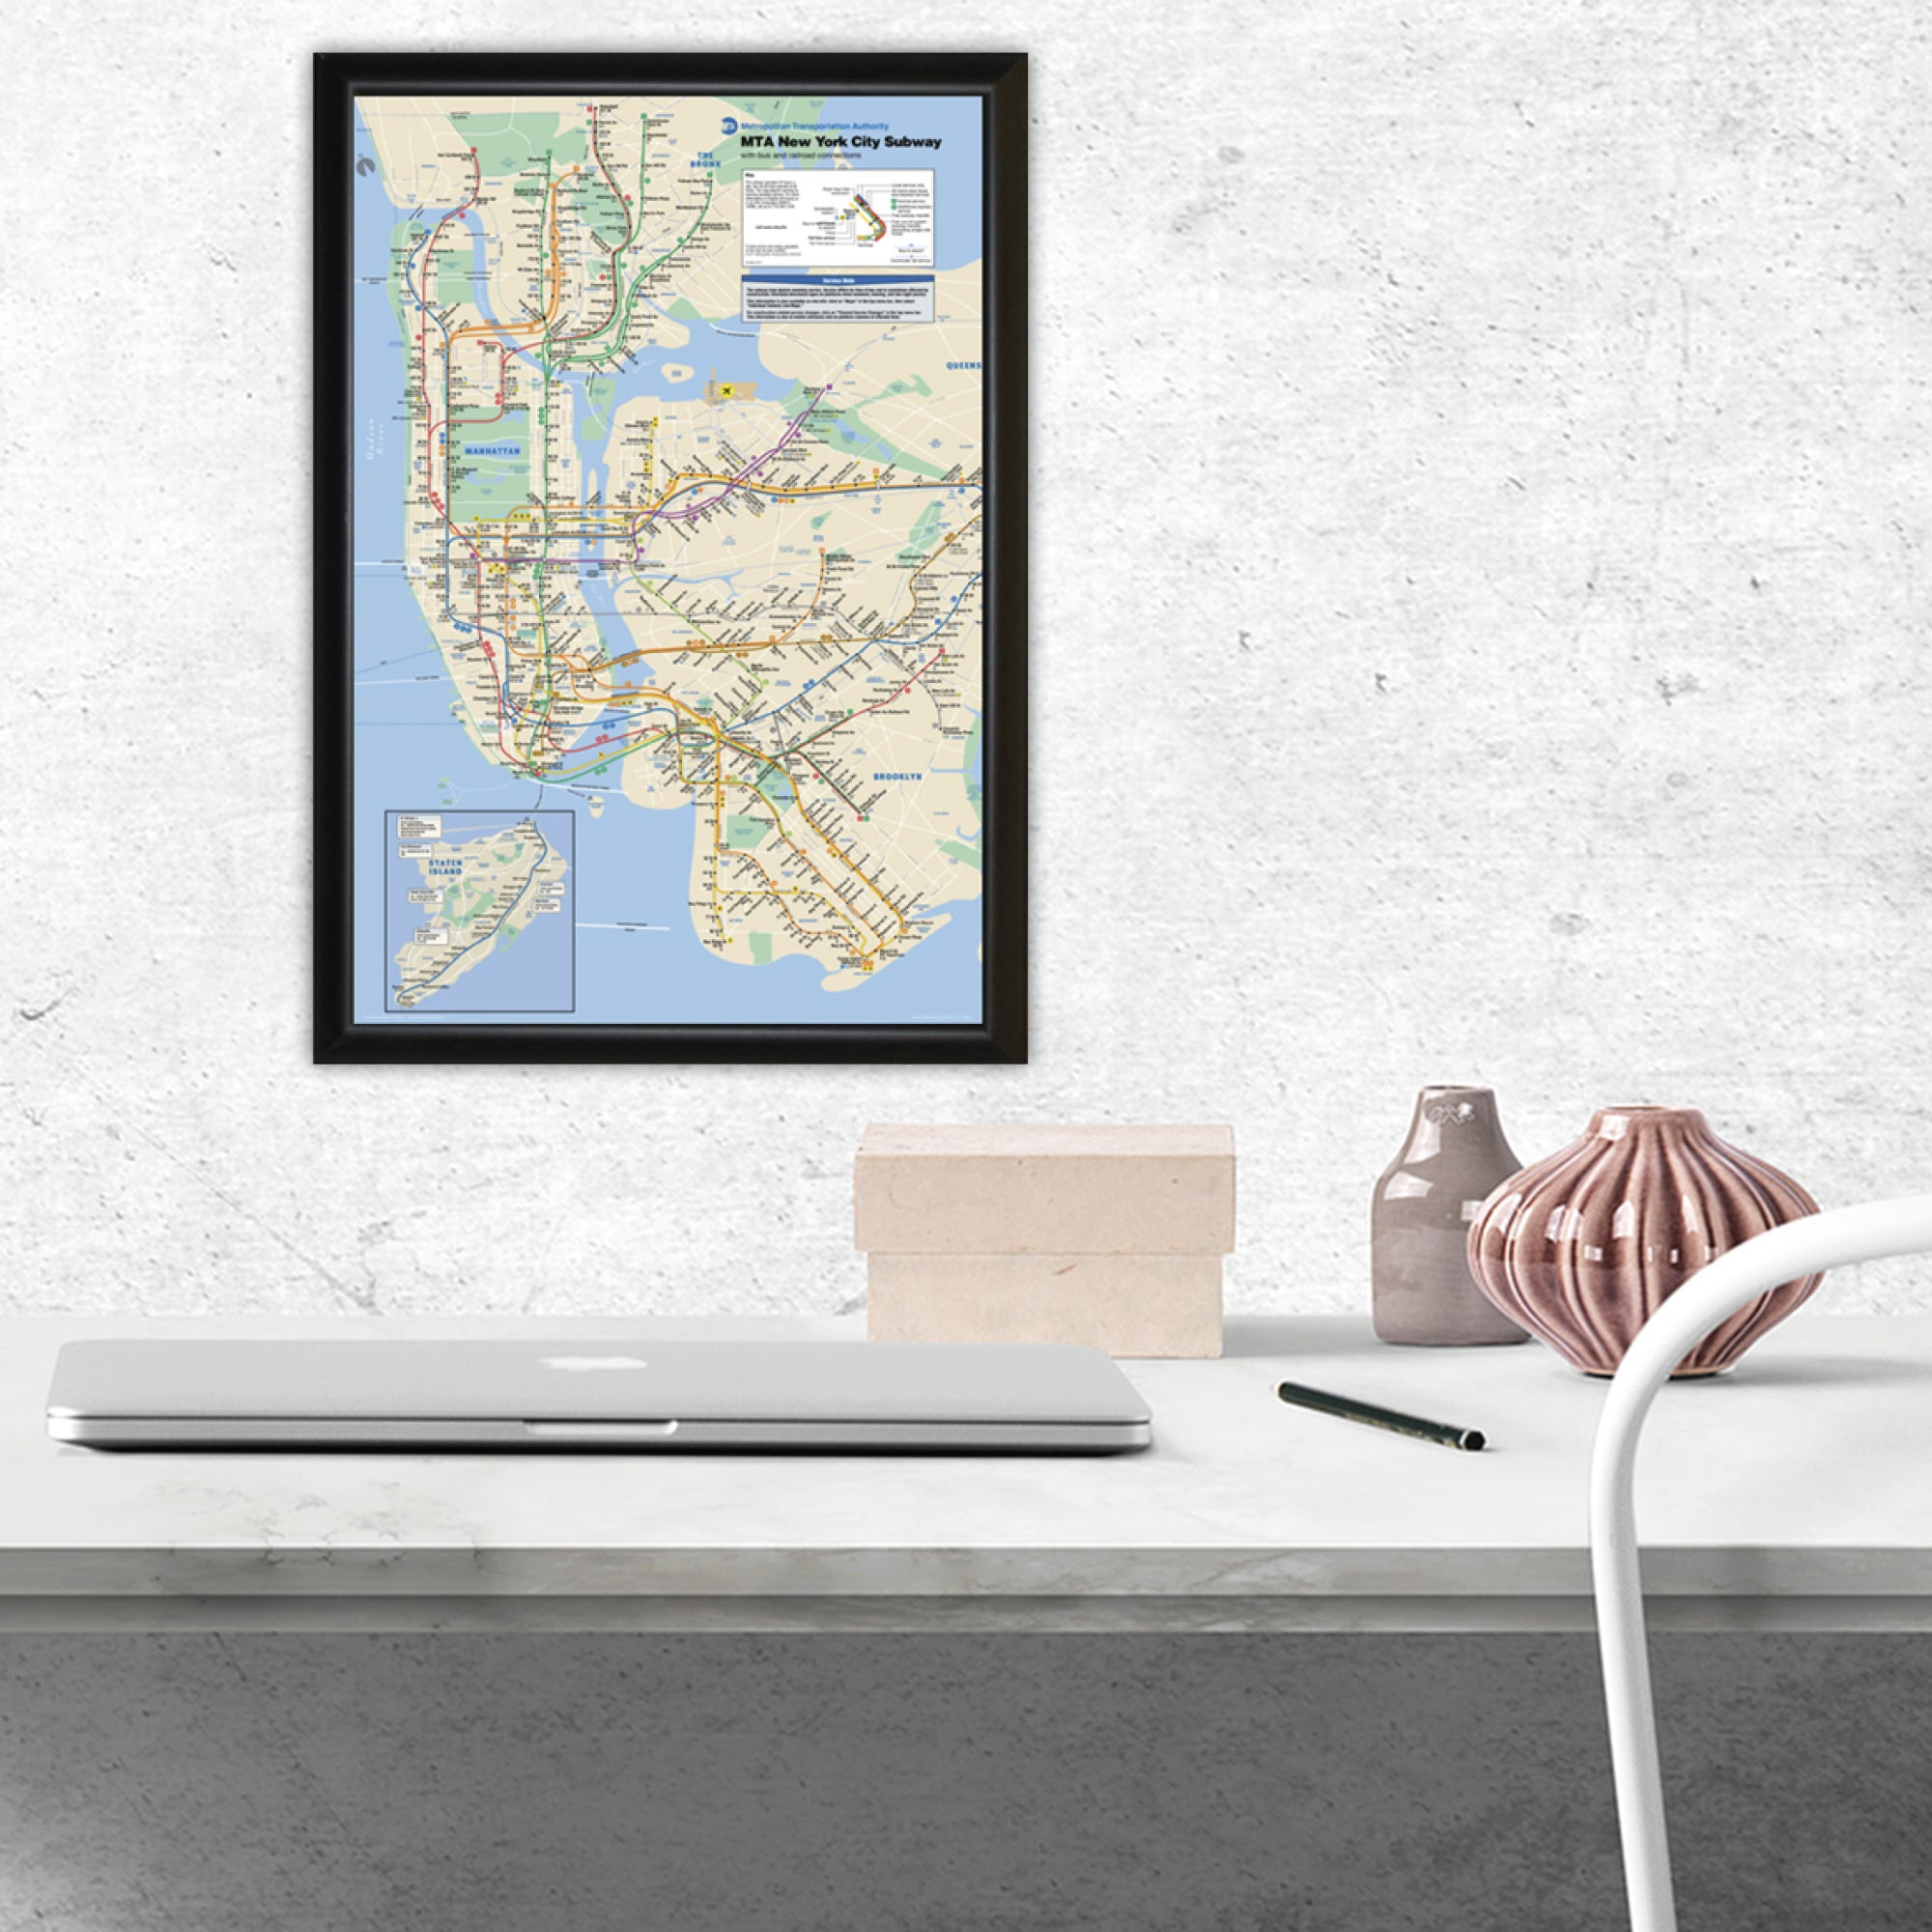 Framed New York Subway Map.Nyc Subway Map Framed 11x17 Print